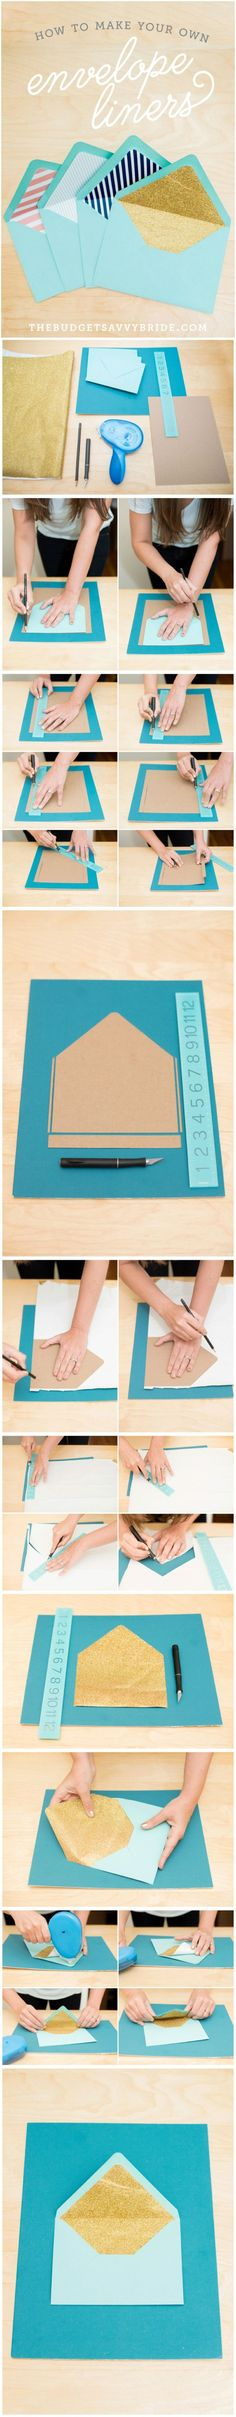 How to make your own colorful custom envelope liners! Step by step tutorial with